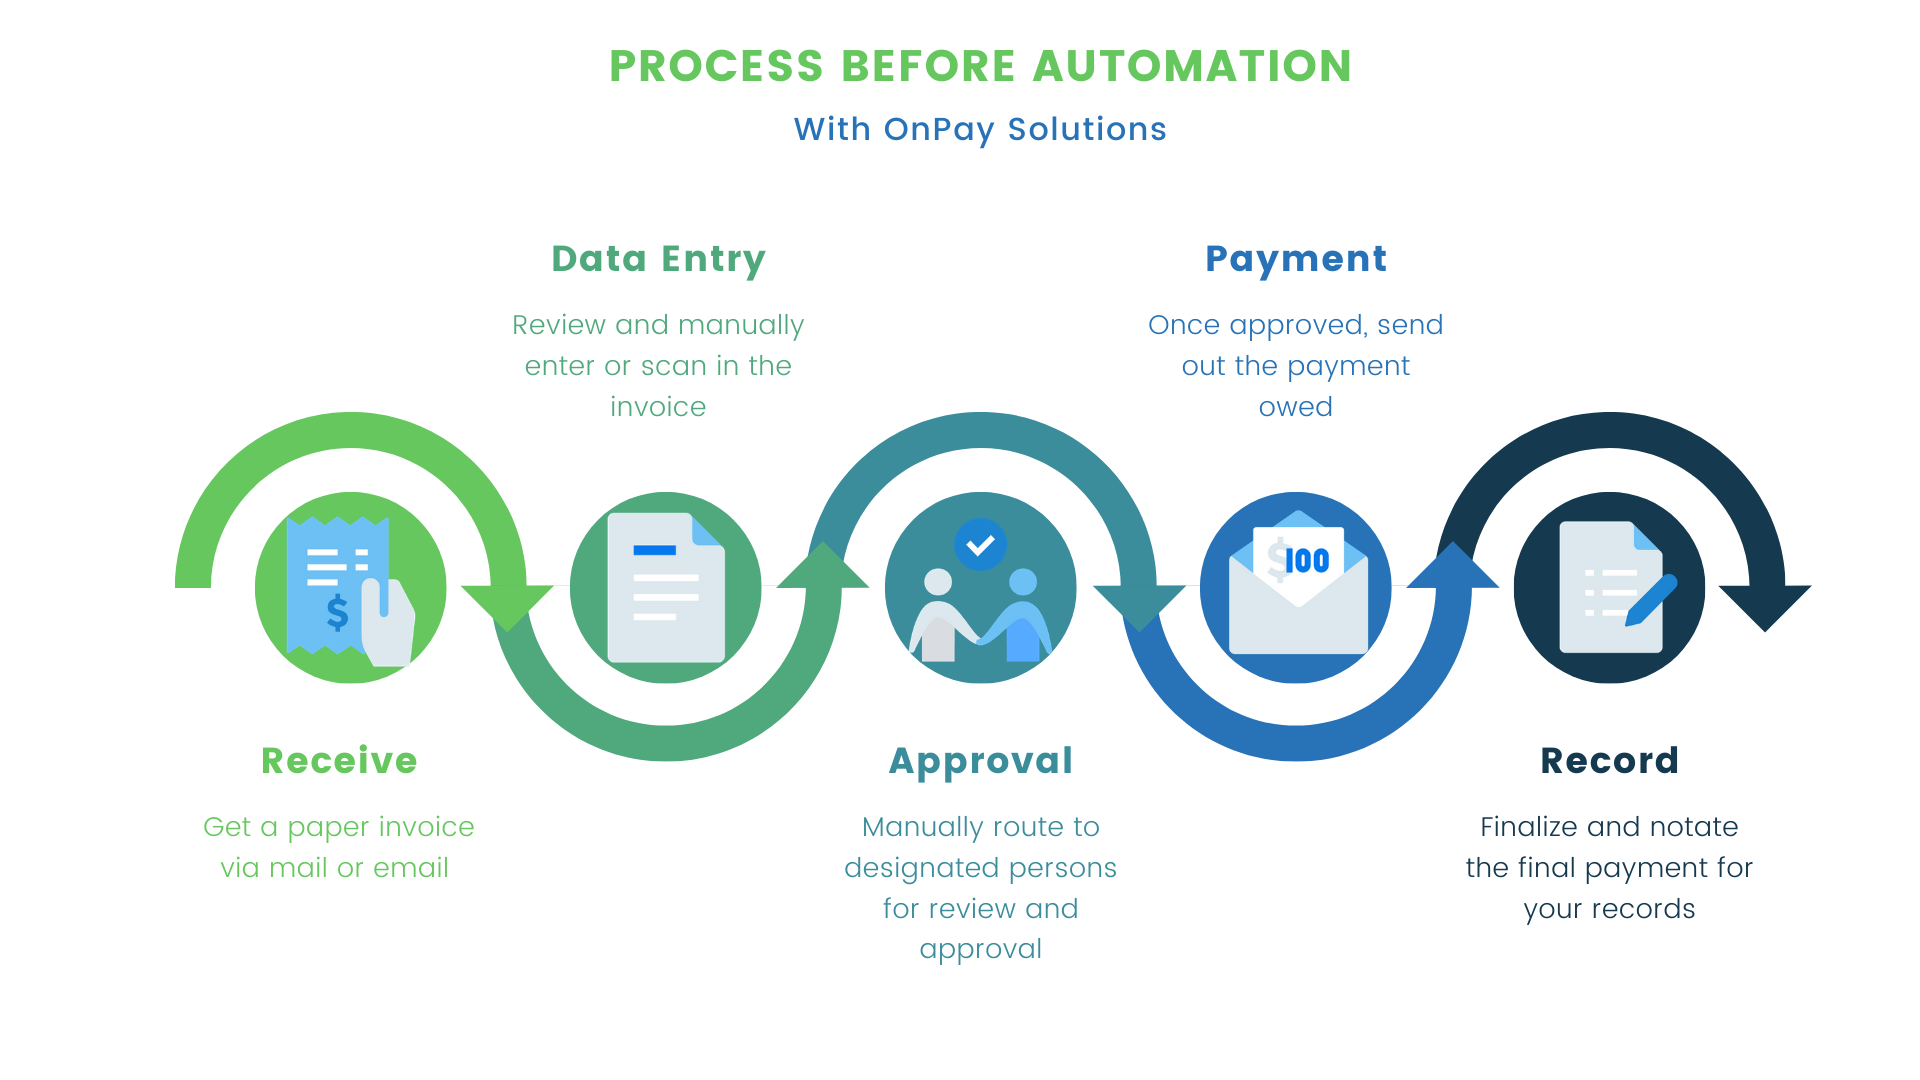 ap_process_before_automation_chart_image